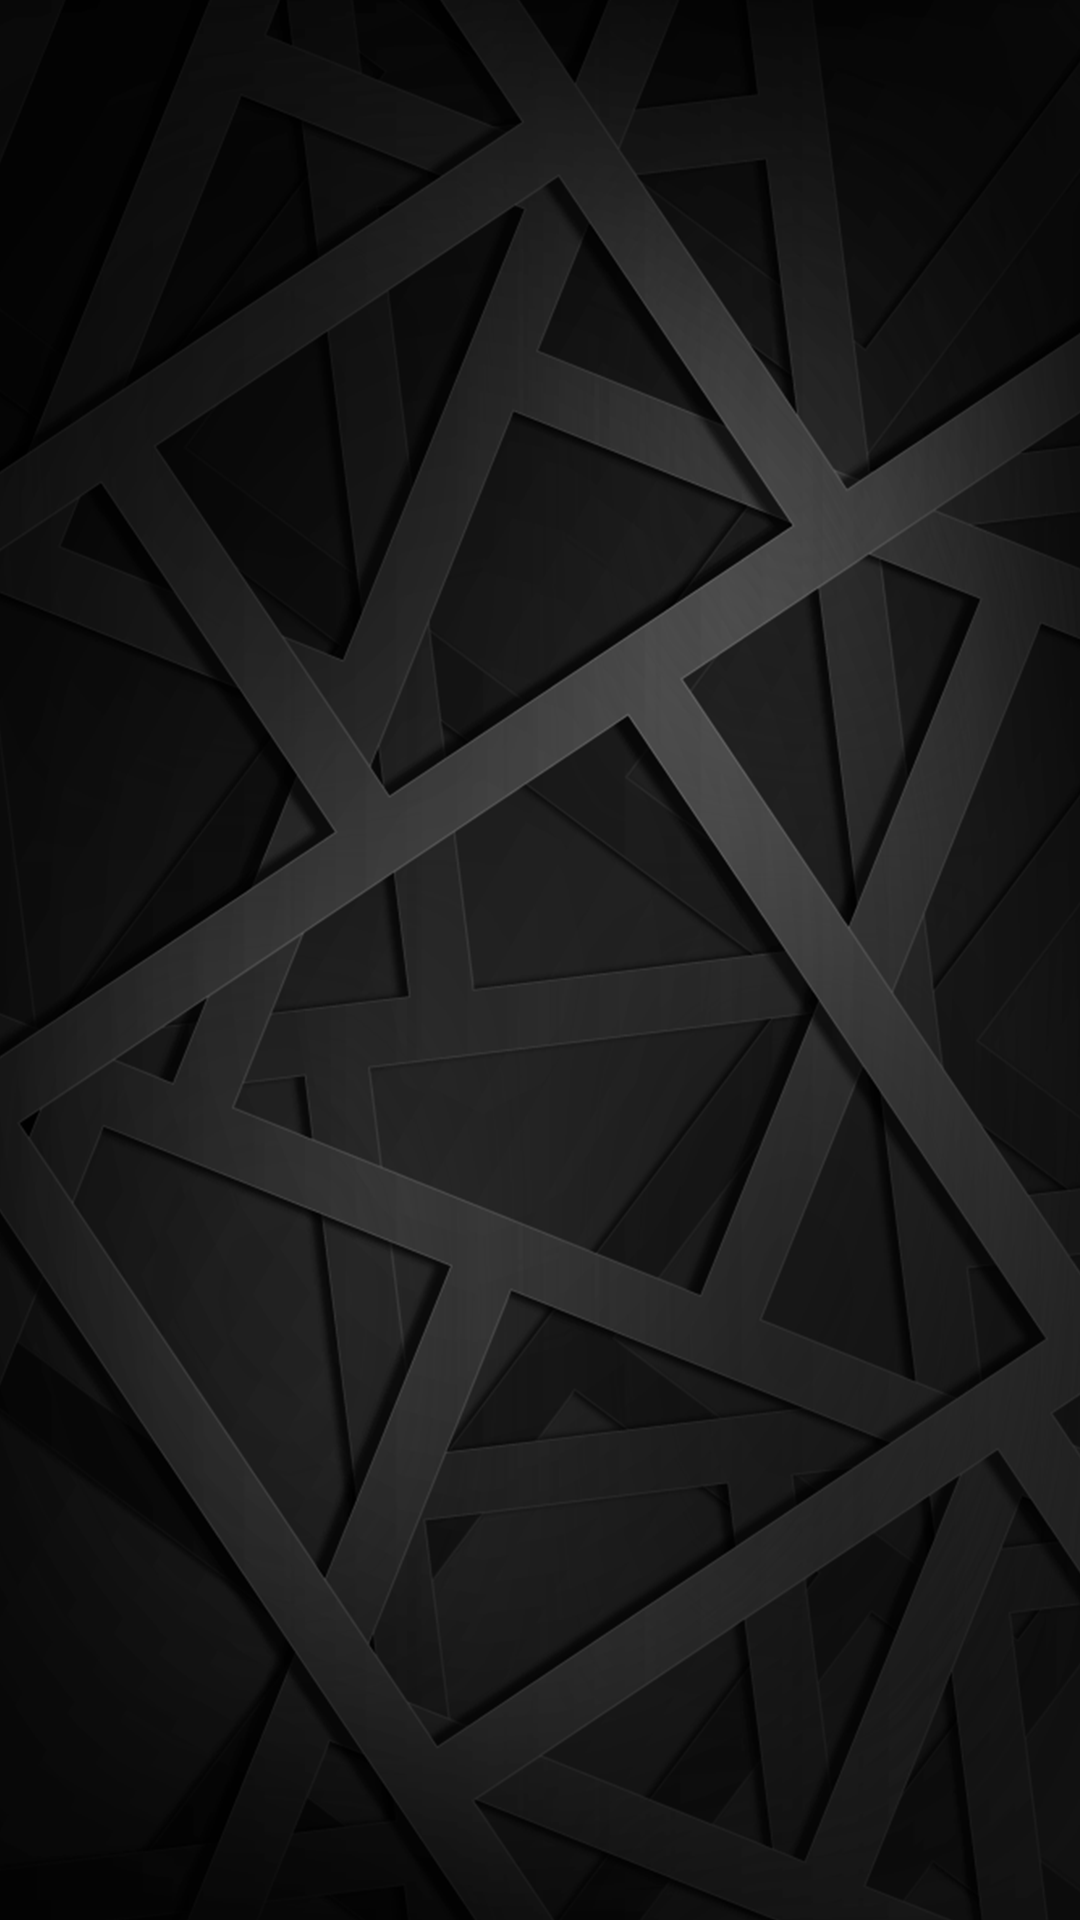 ultra hd geometric black wallpaper for your mobile phone 0111